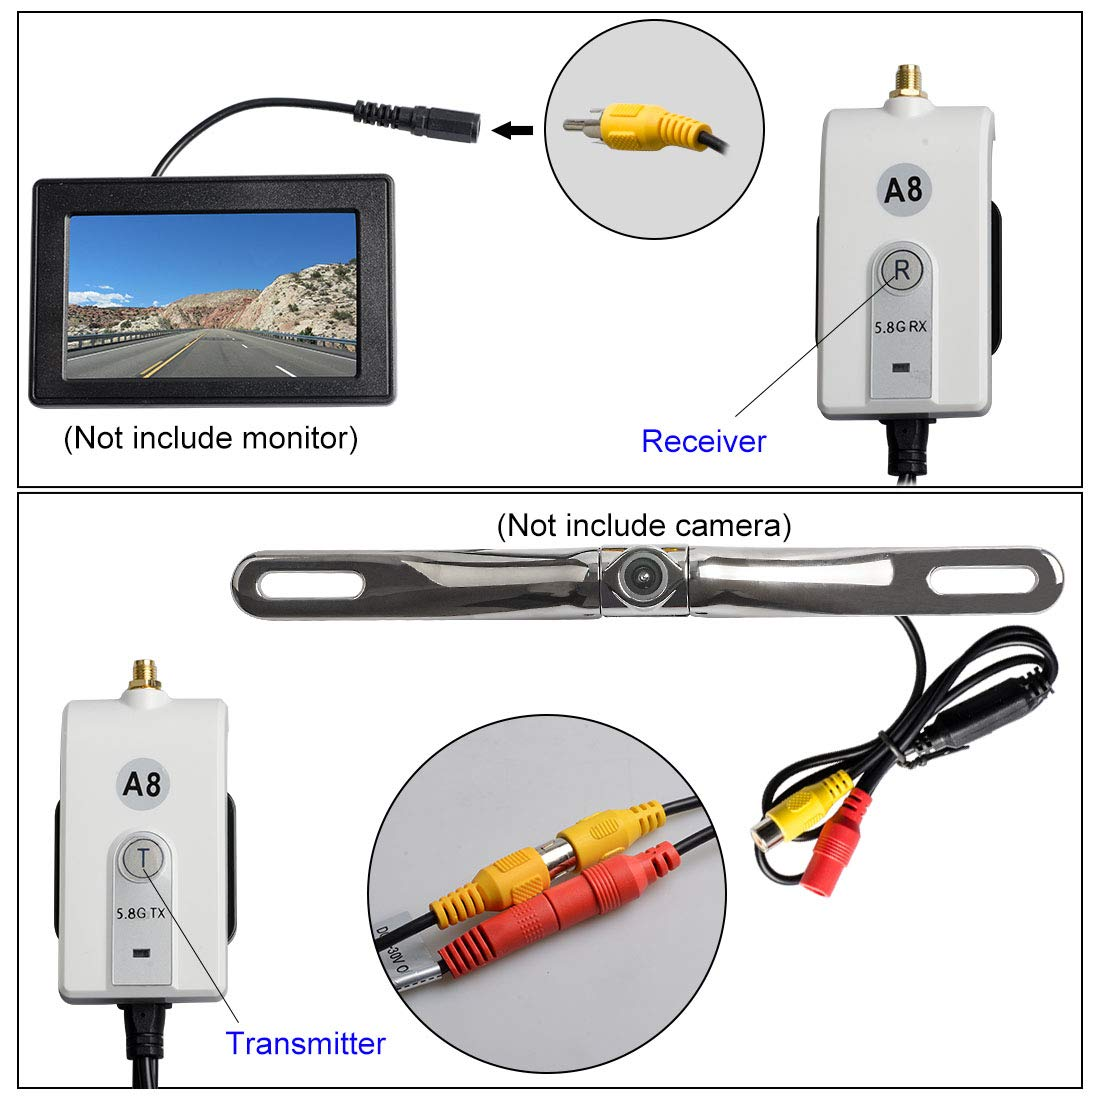 AKK 625-600-A8 5.8G Wireless Video Transmitter /& Receiver Kit for Car Vehicle Backup Camera or Front Car Camera Rear Backup Camera System